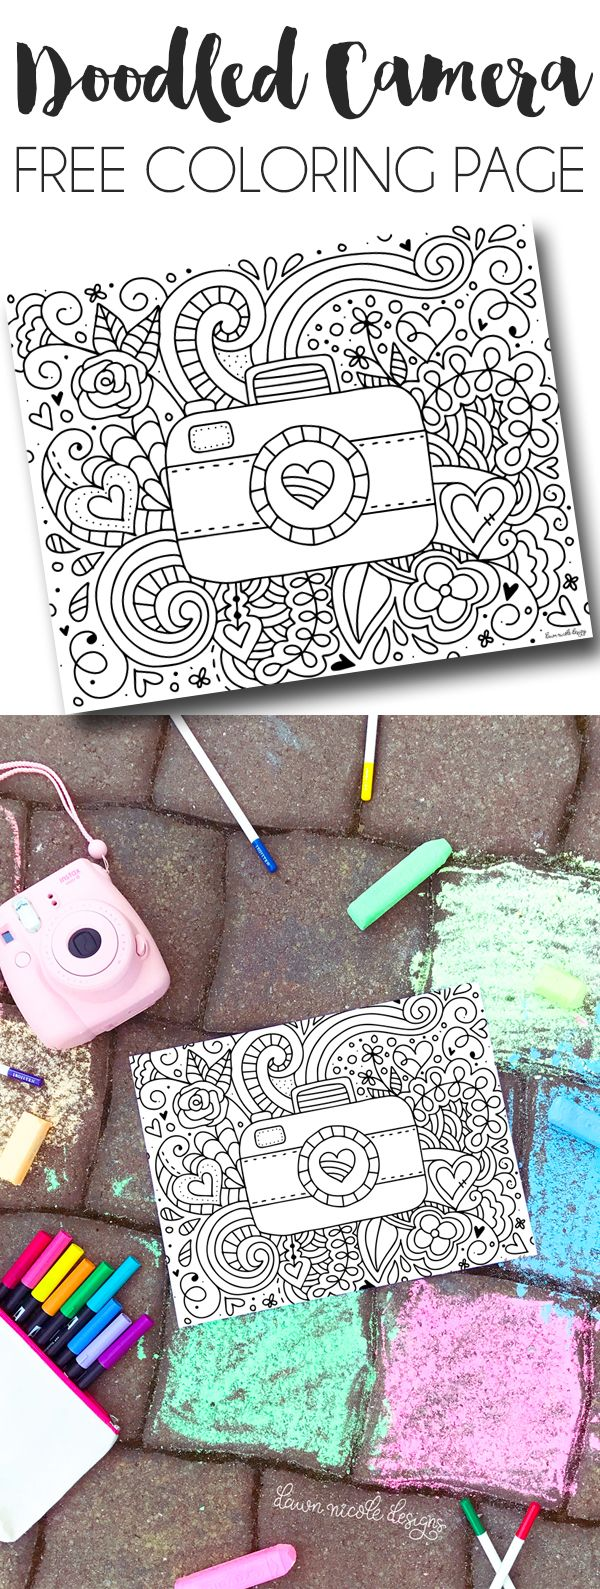 Summer coloring pages for middle school - Doodled Camera Free Printable Coloring Page